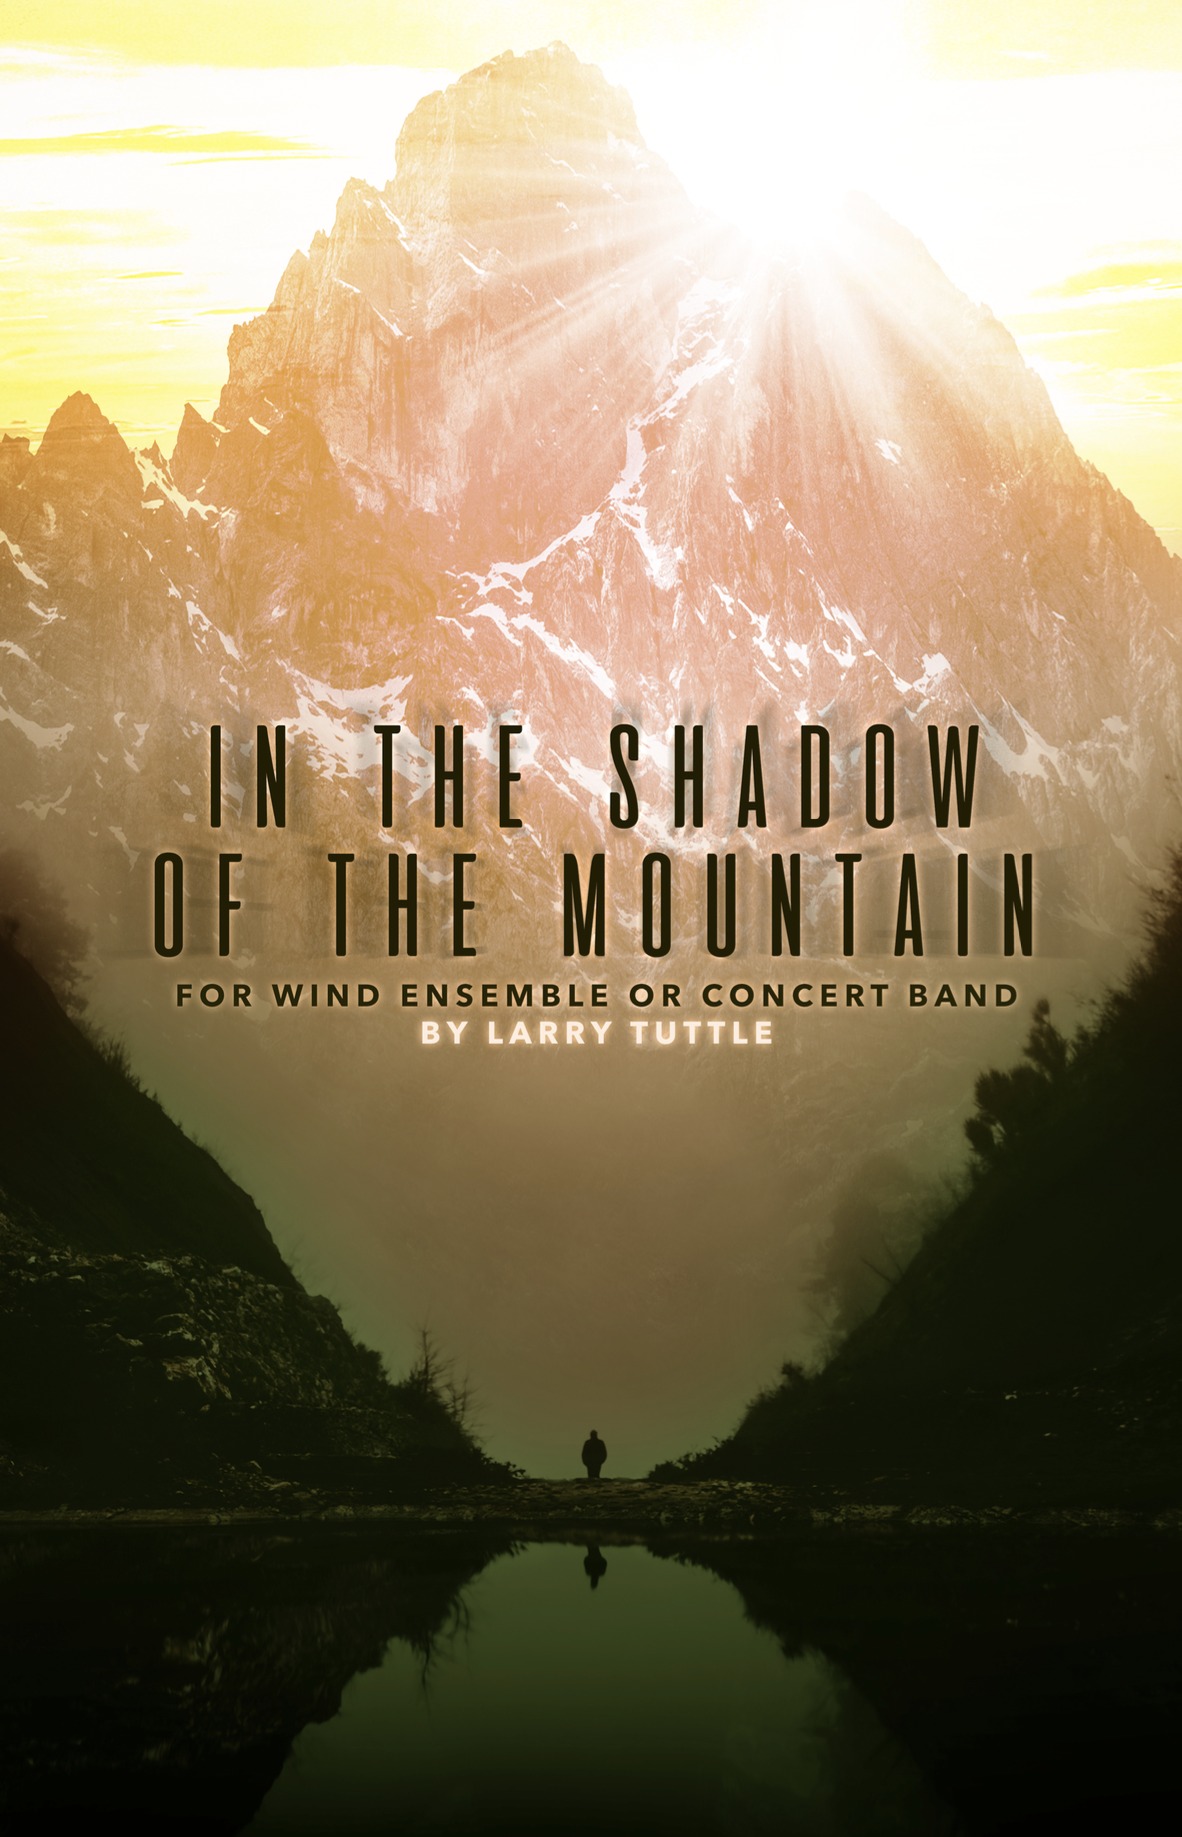 In The Shadow Of The Mountain by Larry Tuttle